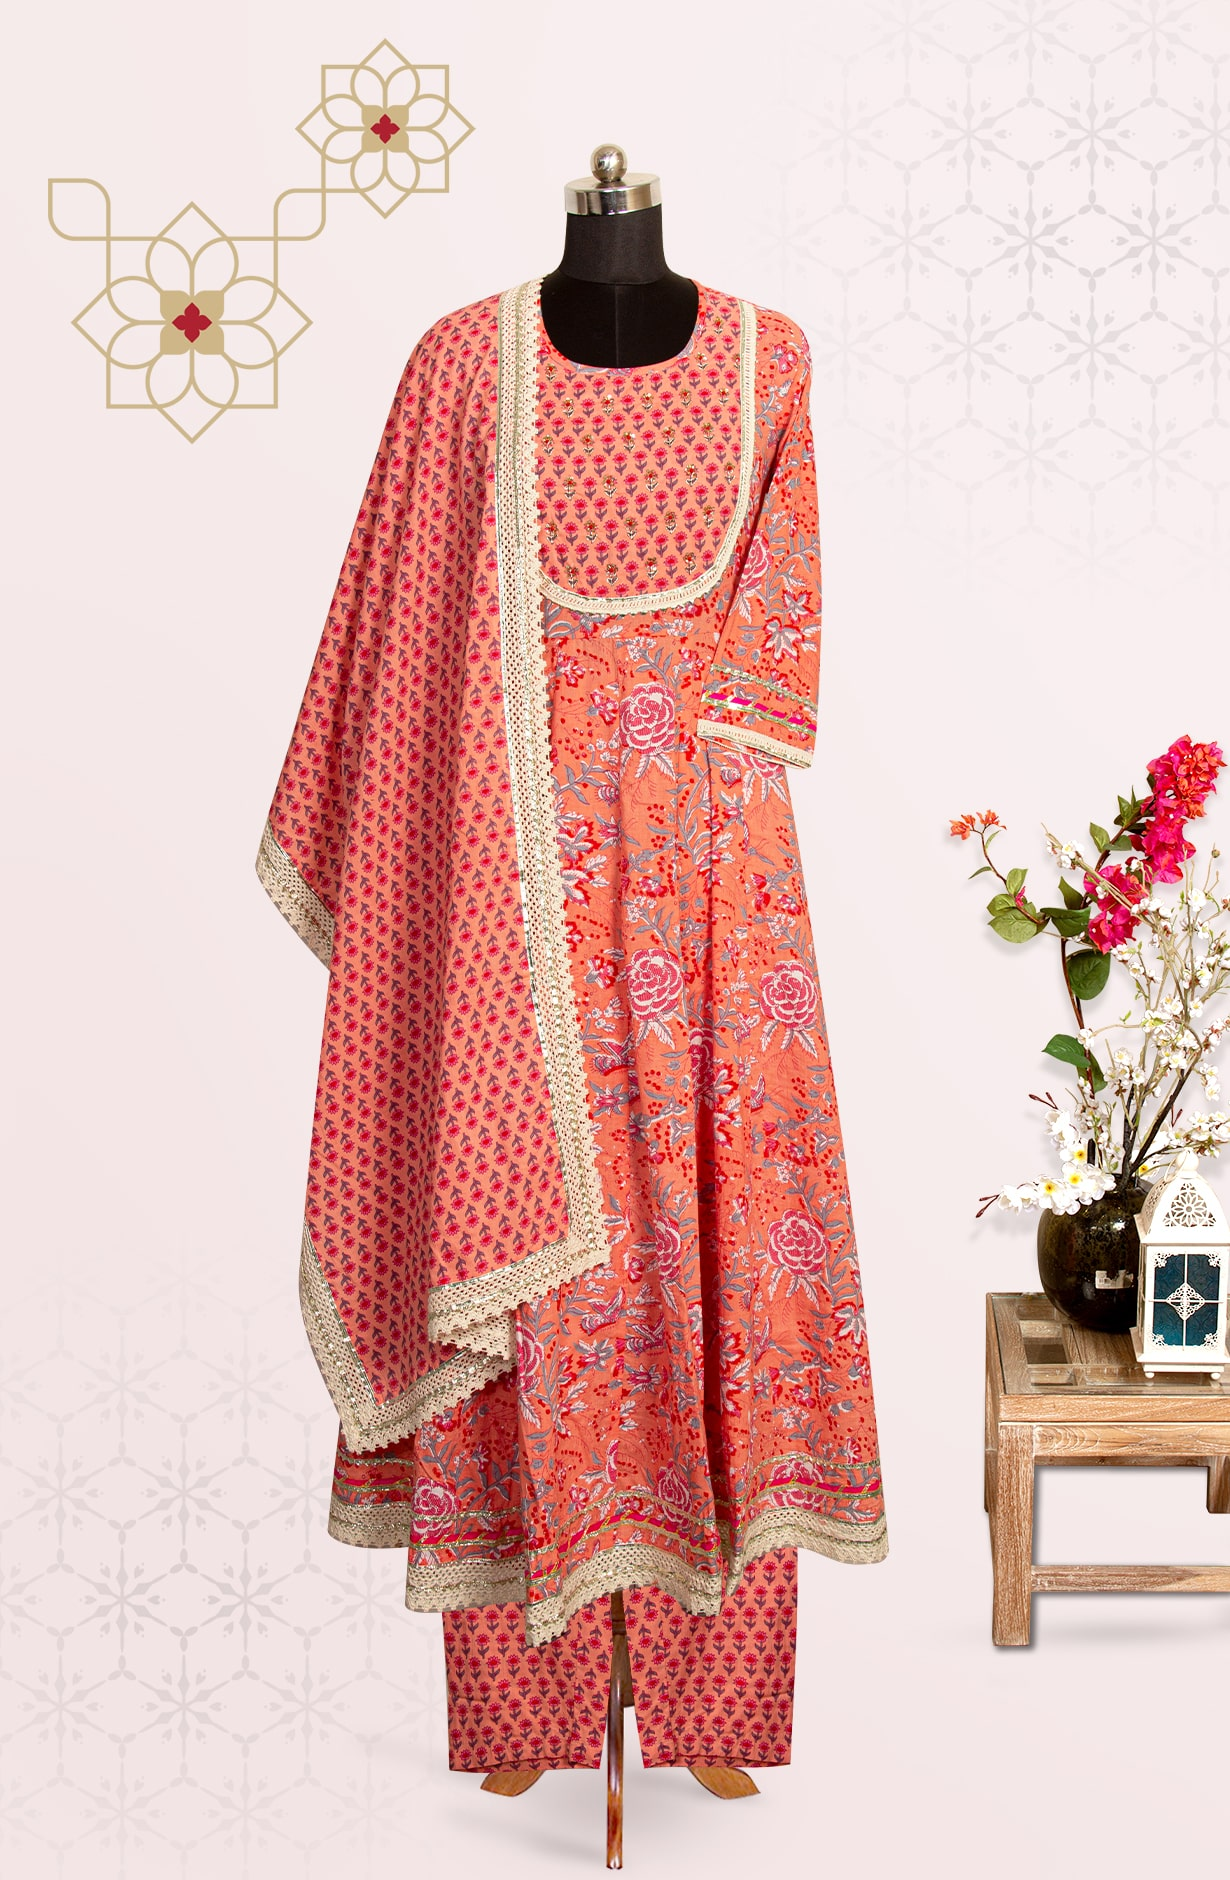 Peach Cotton Printed Readymade Suit Set with Pants - 691-F4101